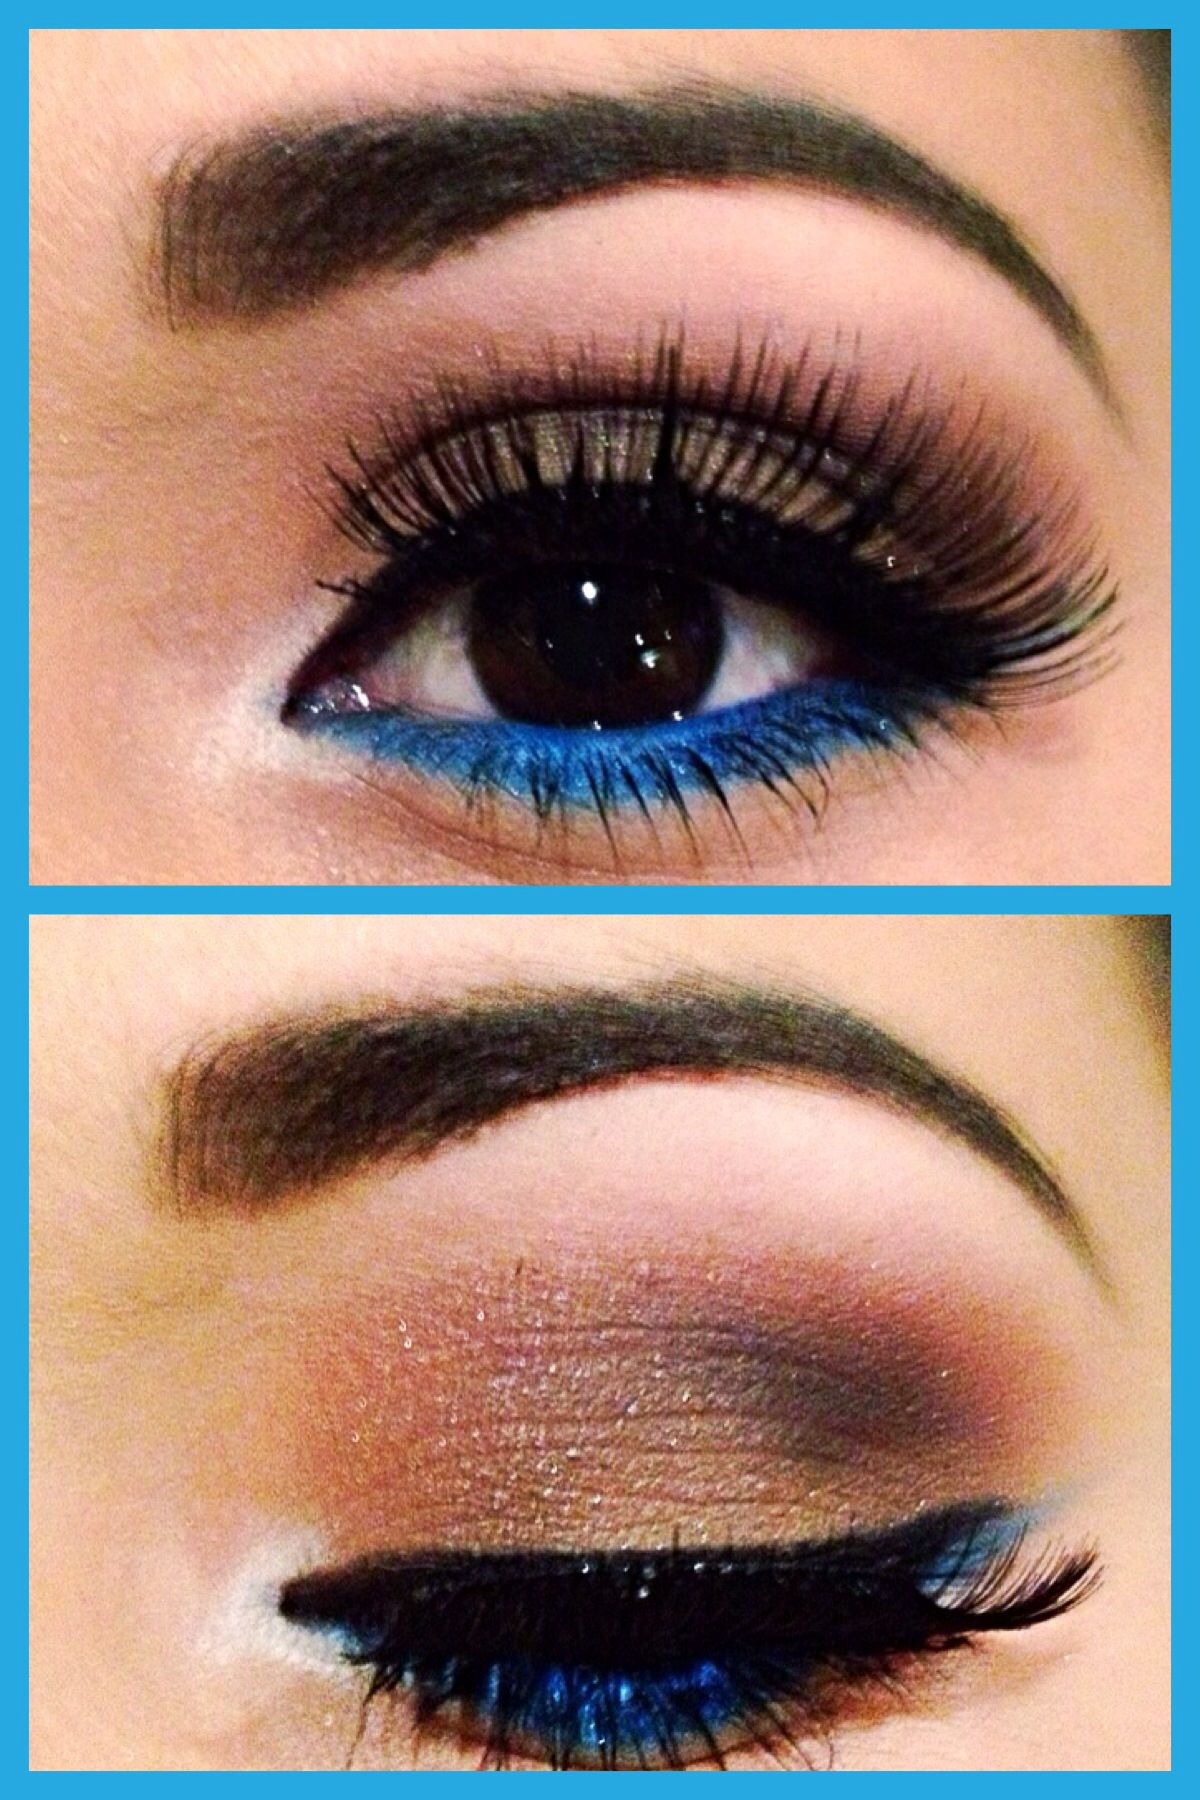 Brown and blue make up